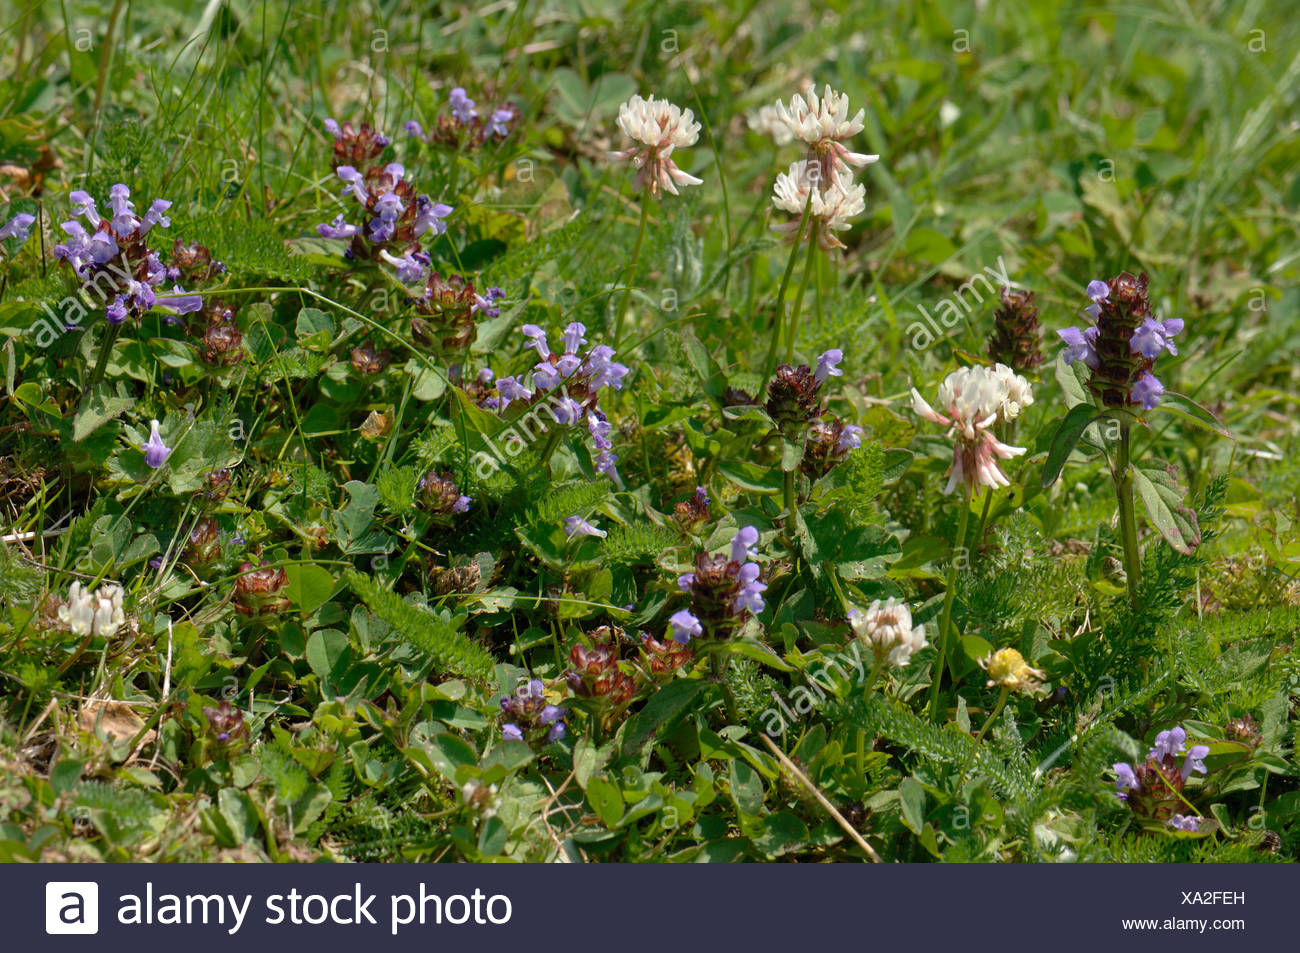 Self Heal And White Clover Flowering In A Garden Lawn In Summer